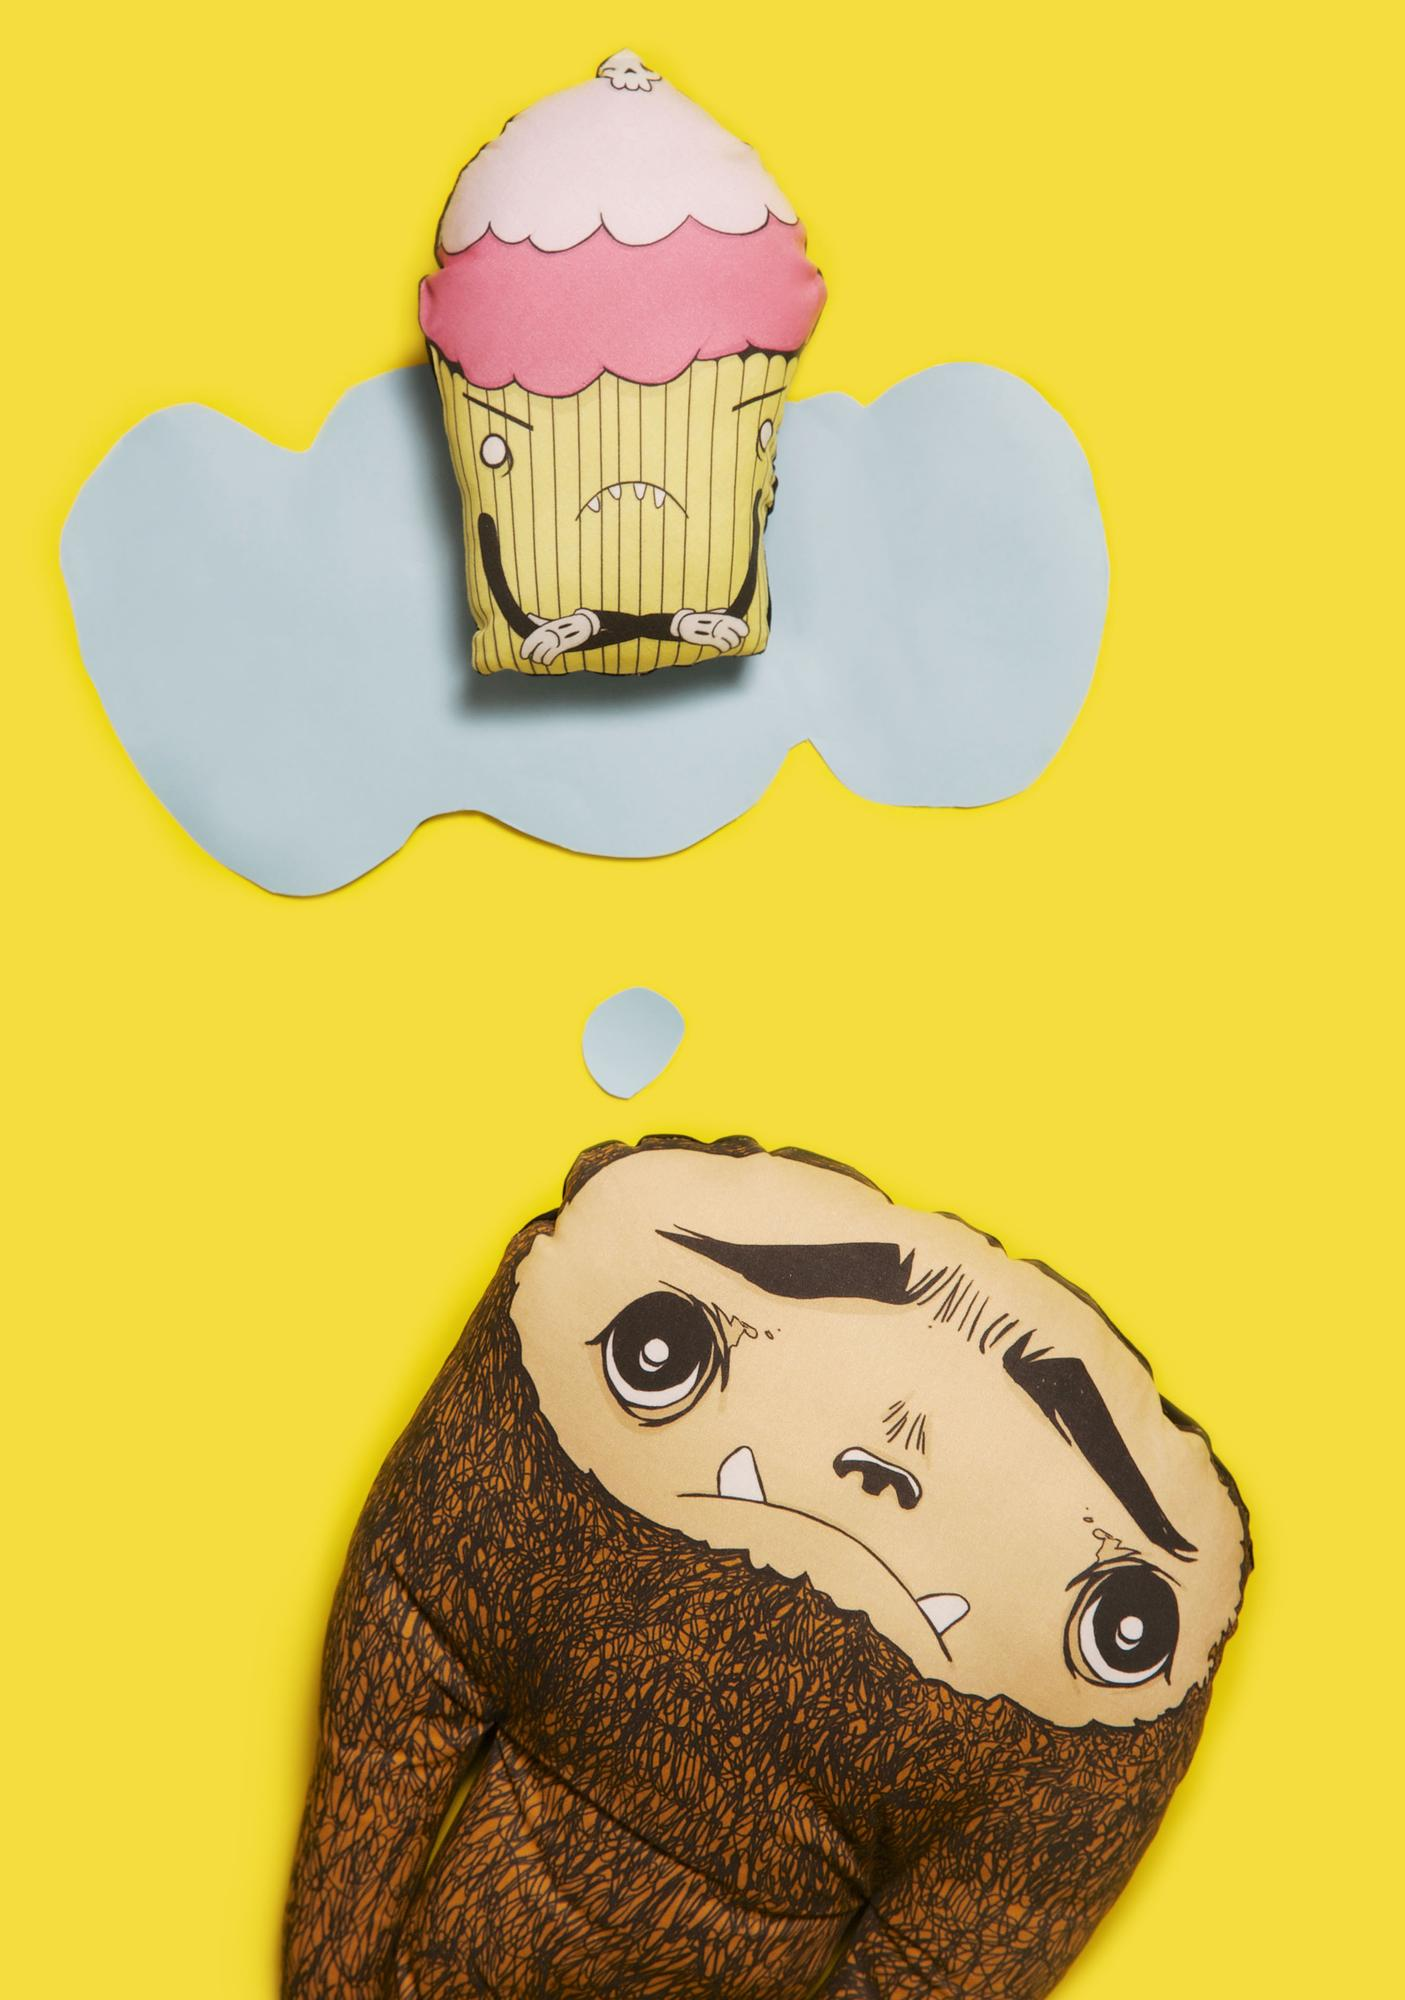 Pickled Punks Mini Cupcake Plush